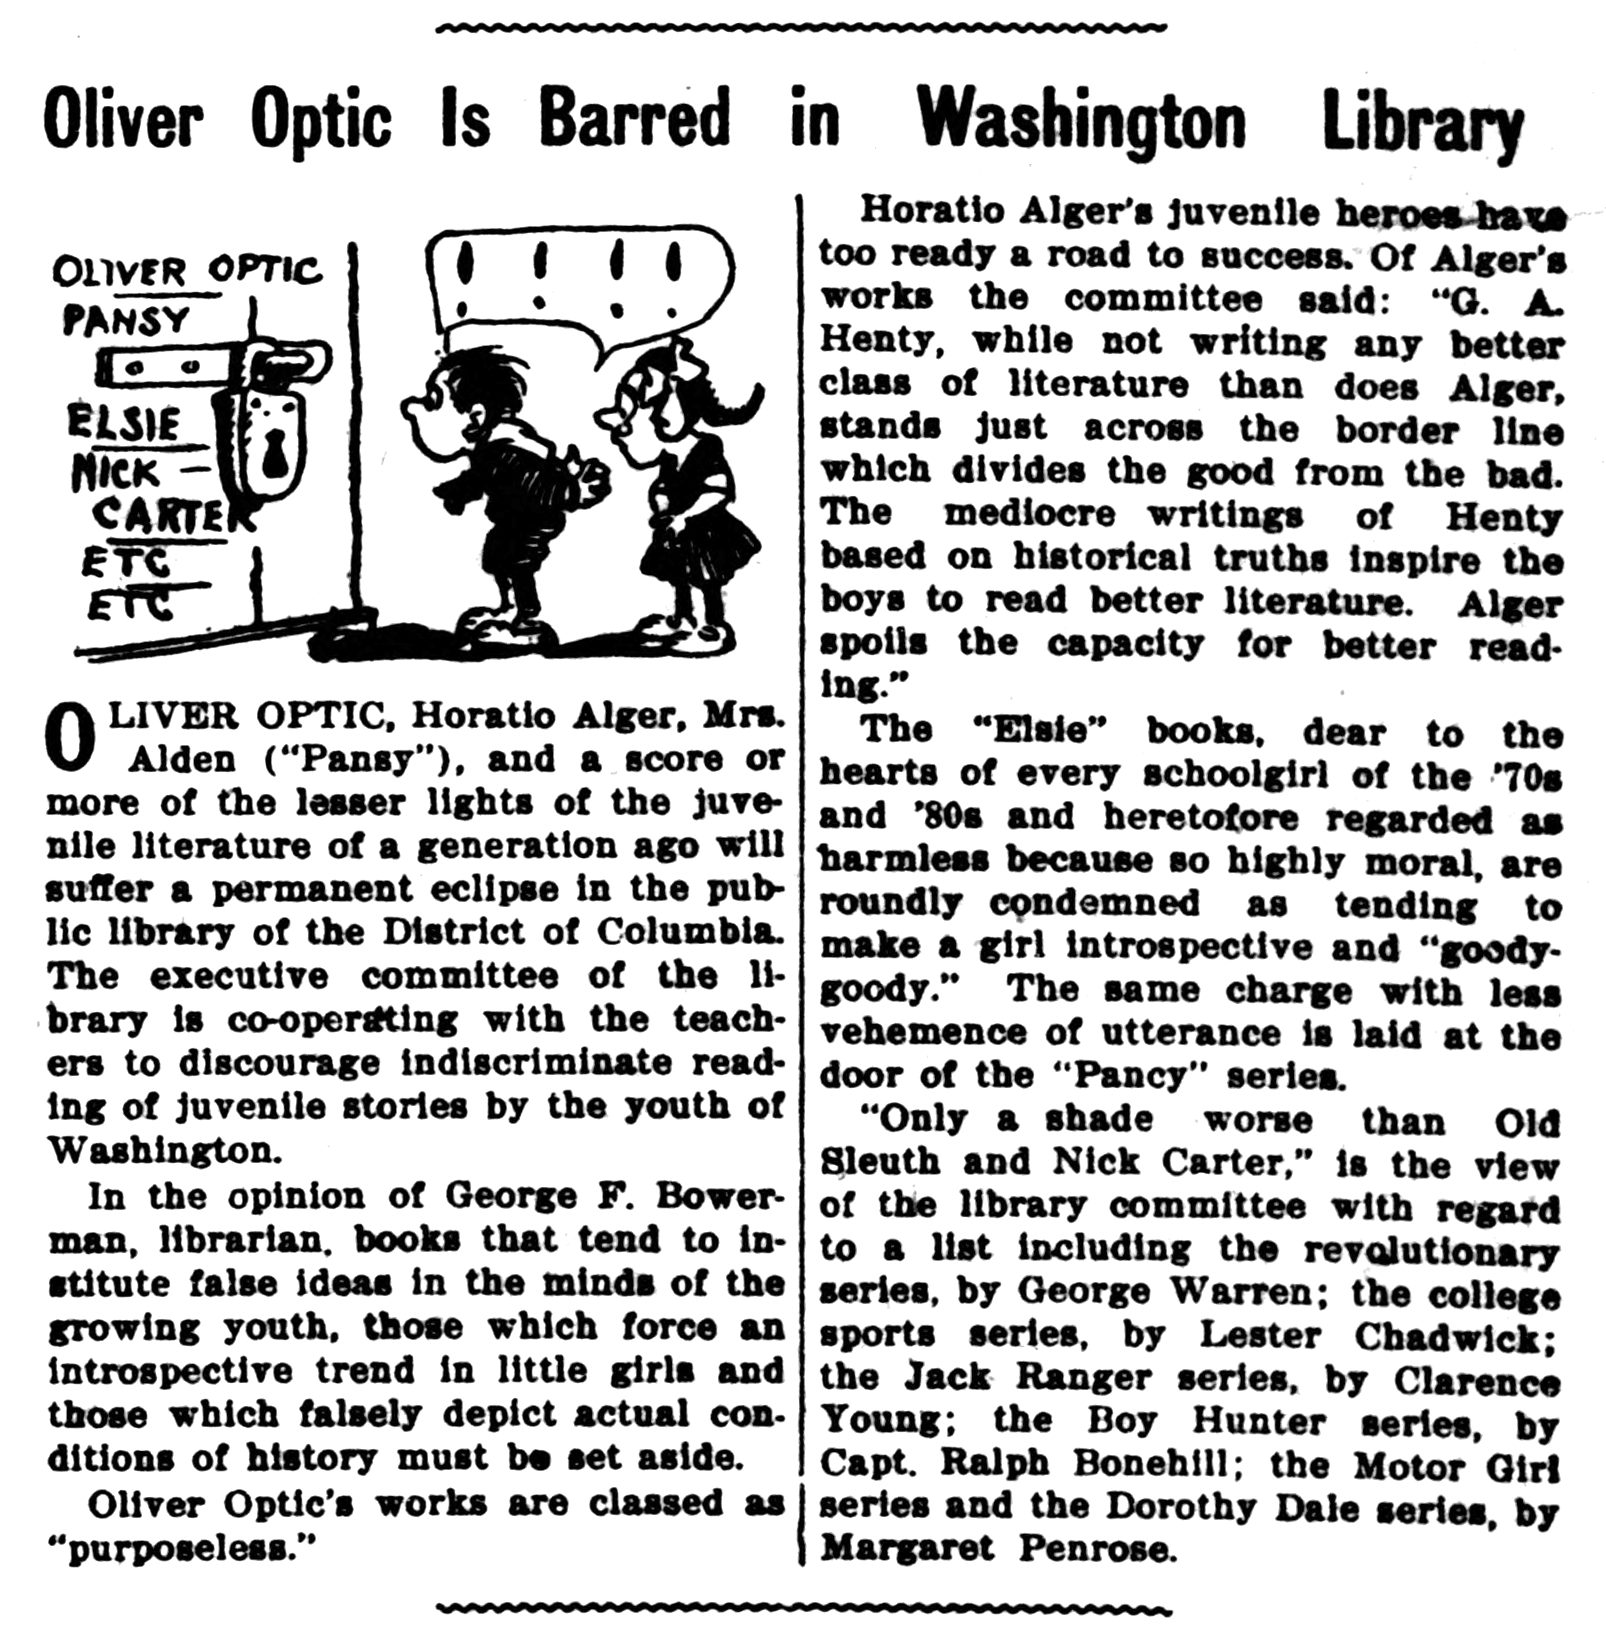 Oliver Optic is barred in Washington library (14 Dec 1912)